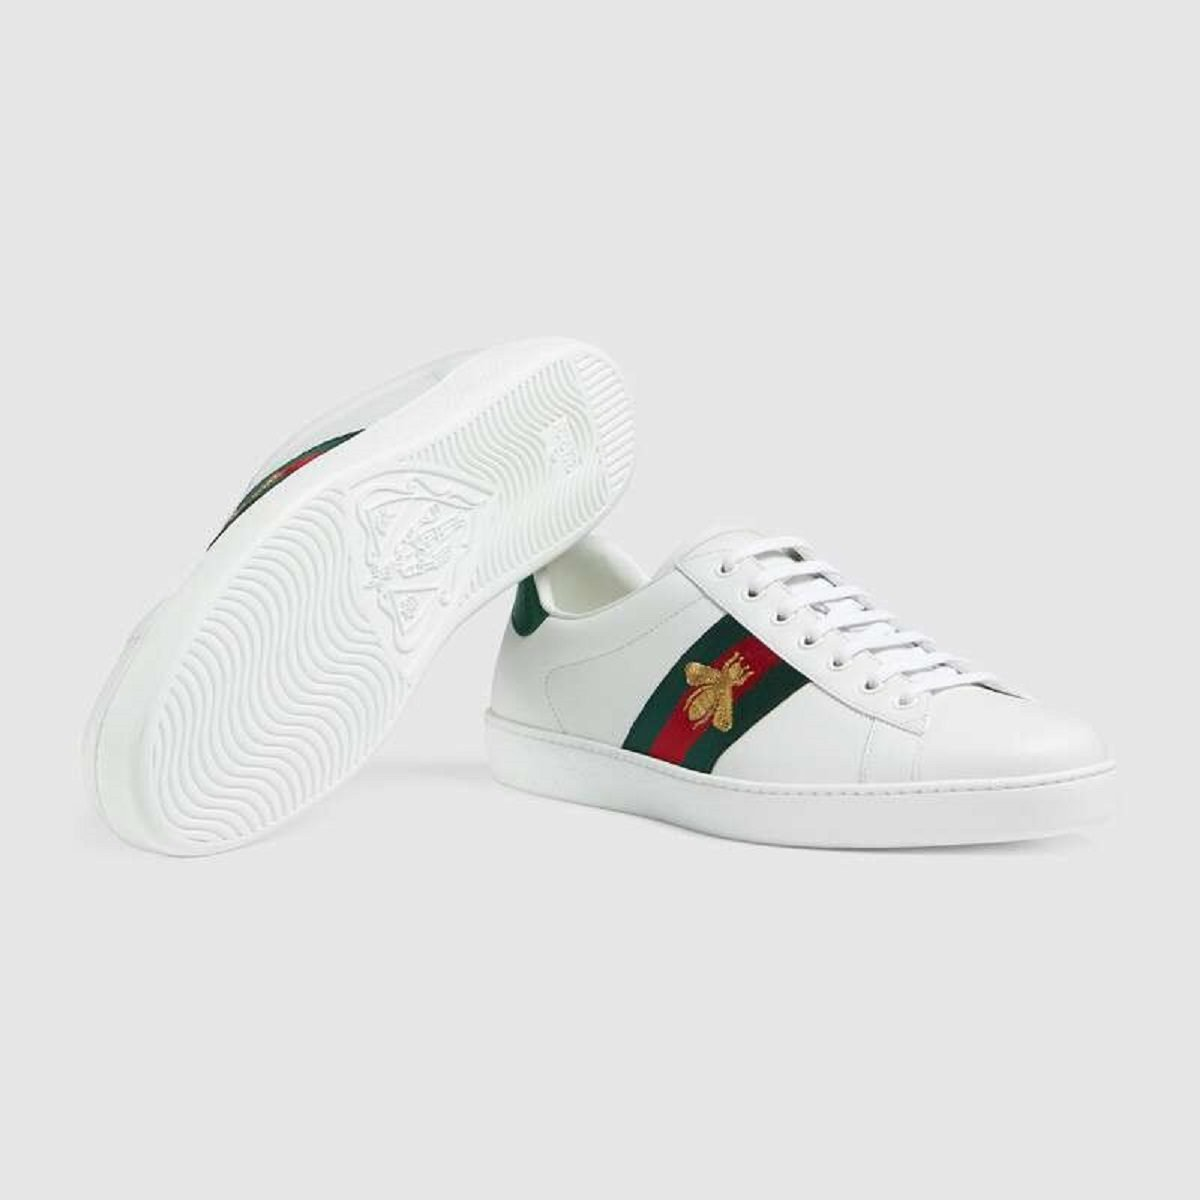 If you're looking for more than just the best white sneakers, but a bit of drama too, look to Gucci.